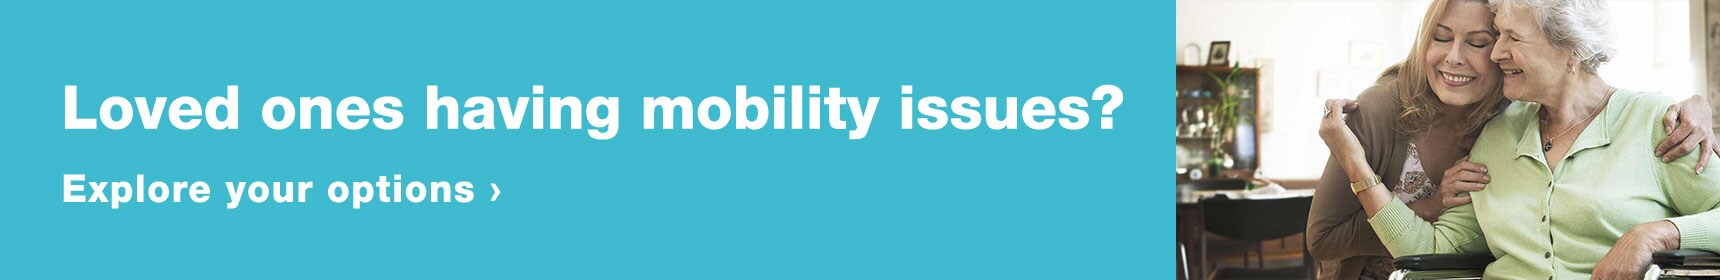 Loved Ones Having Mobility Issues Explore Your Options